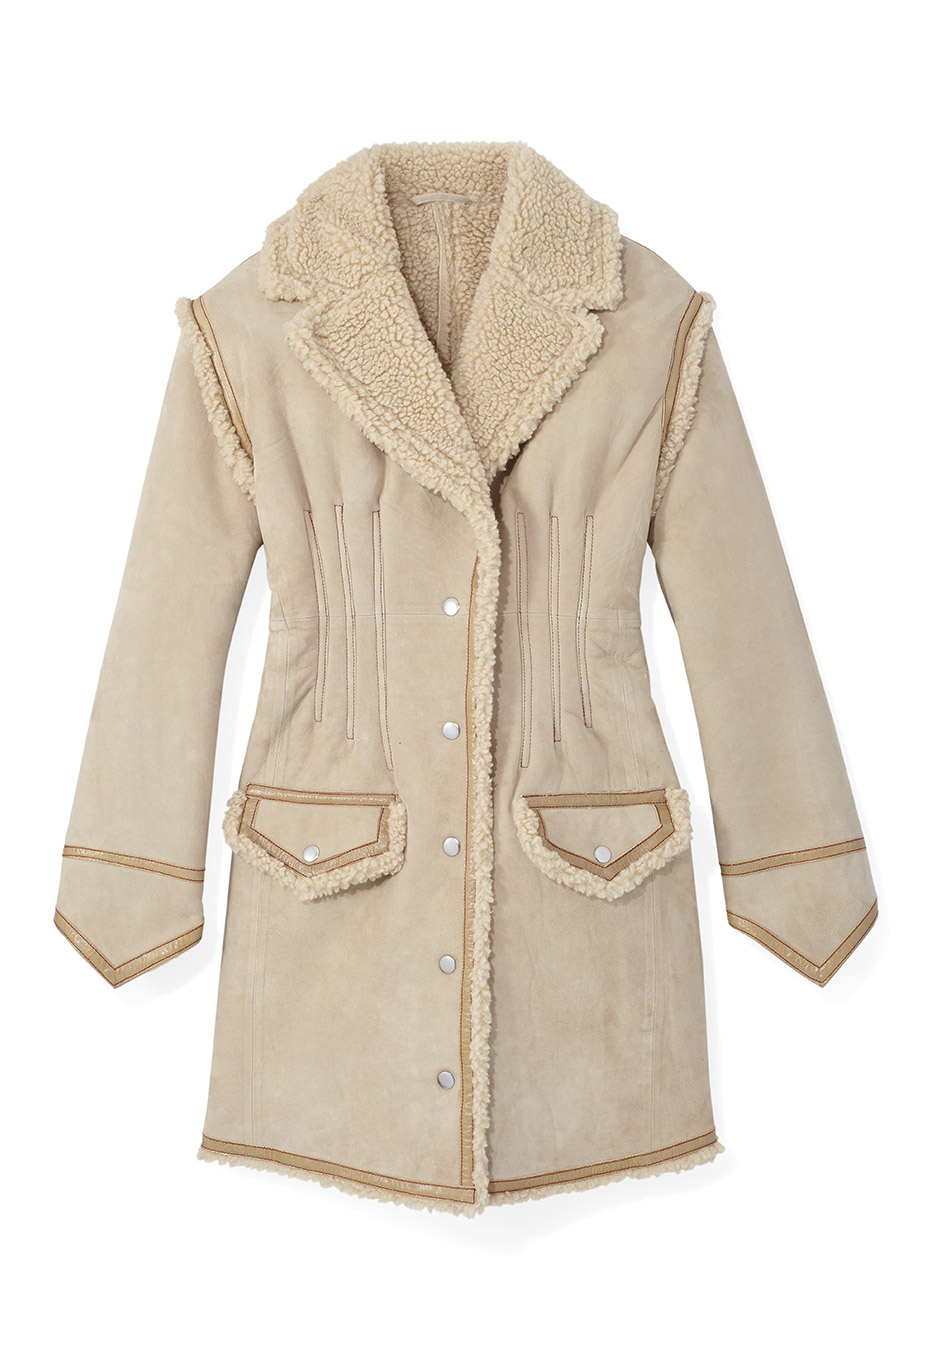 Jcpenney Liz Claiborne Trench Coat - Tradingbasis